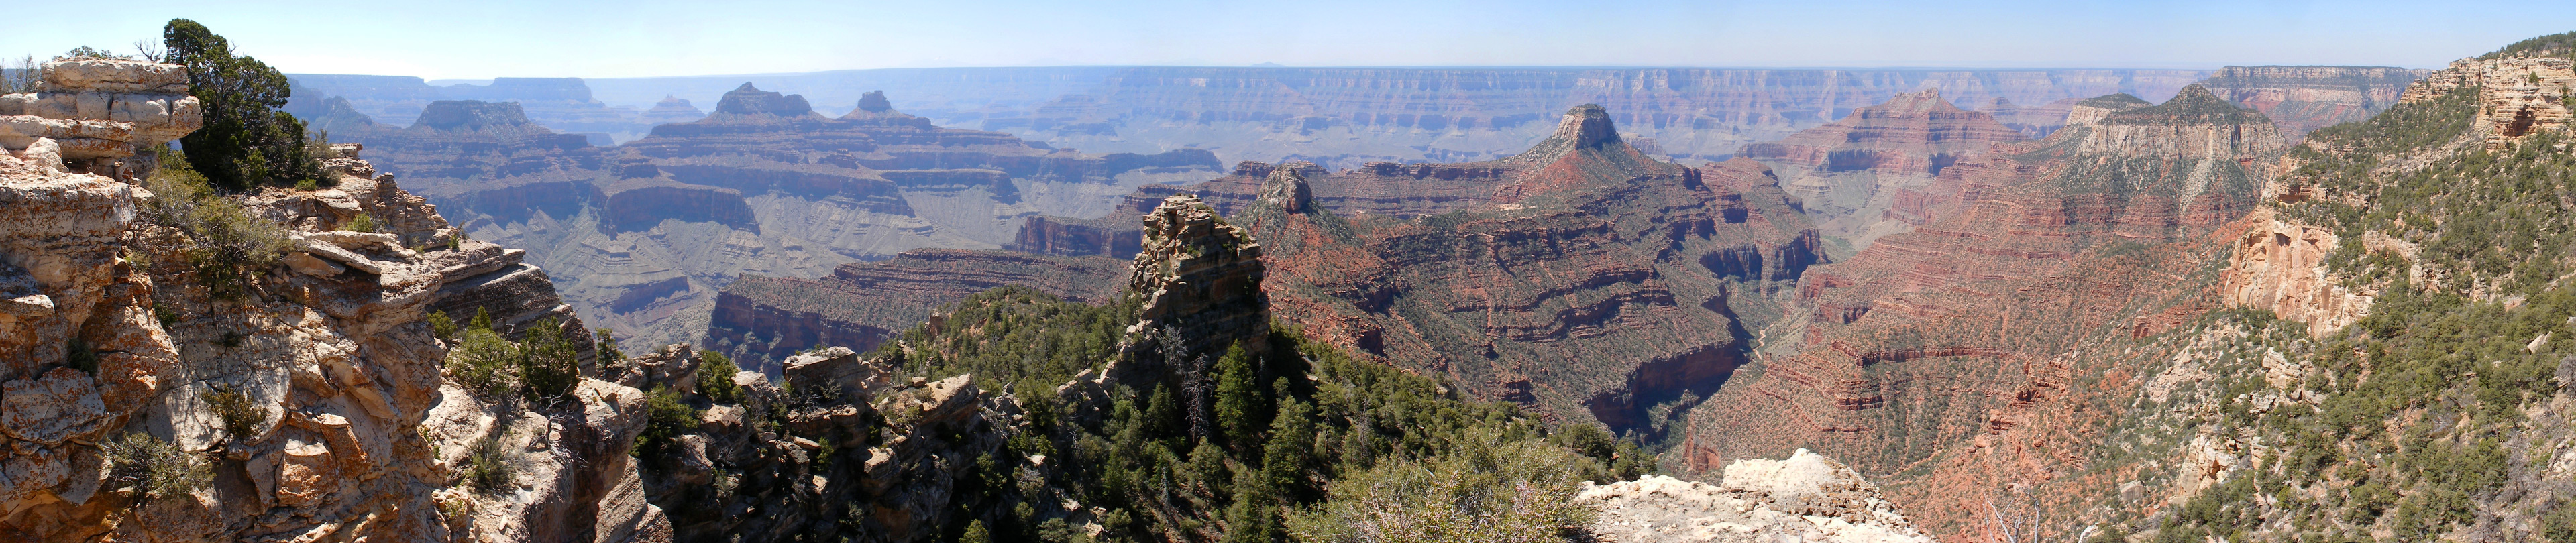 Panorama of the Grand Canyon, from Widforss Point